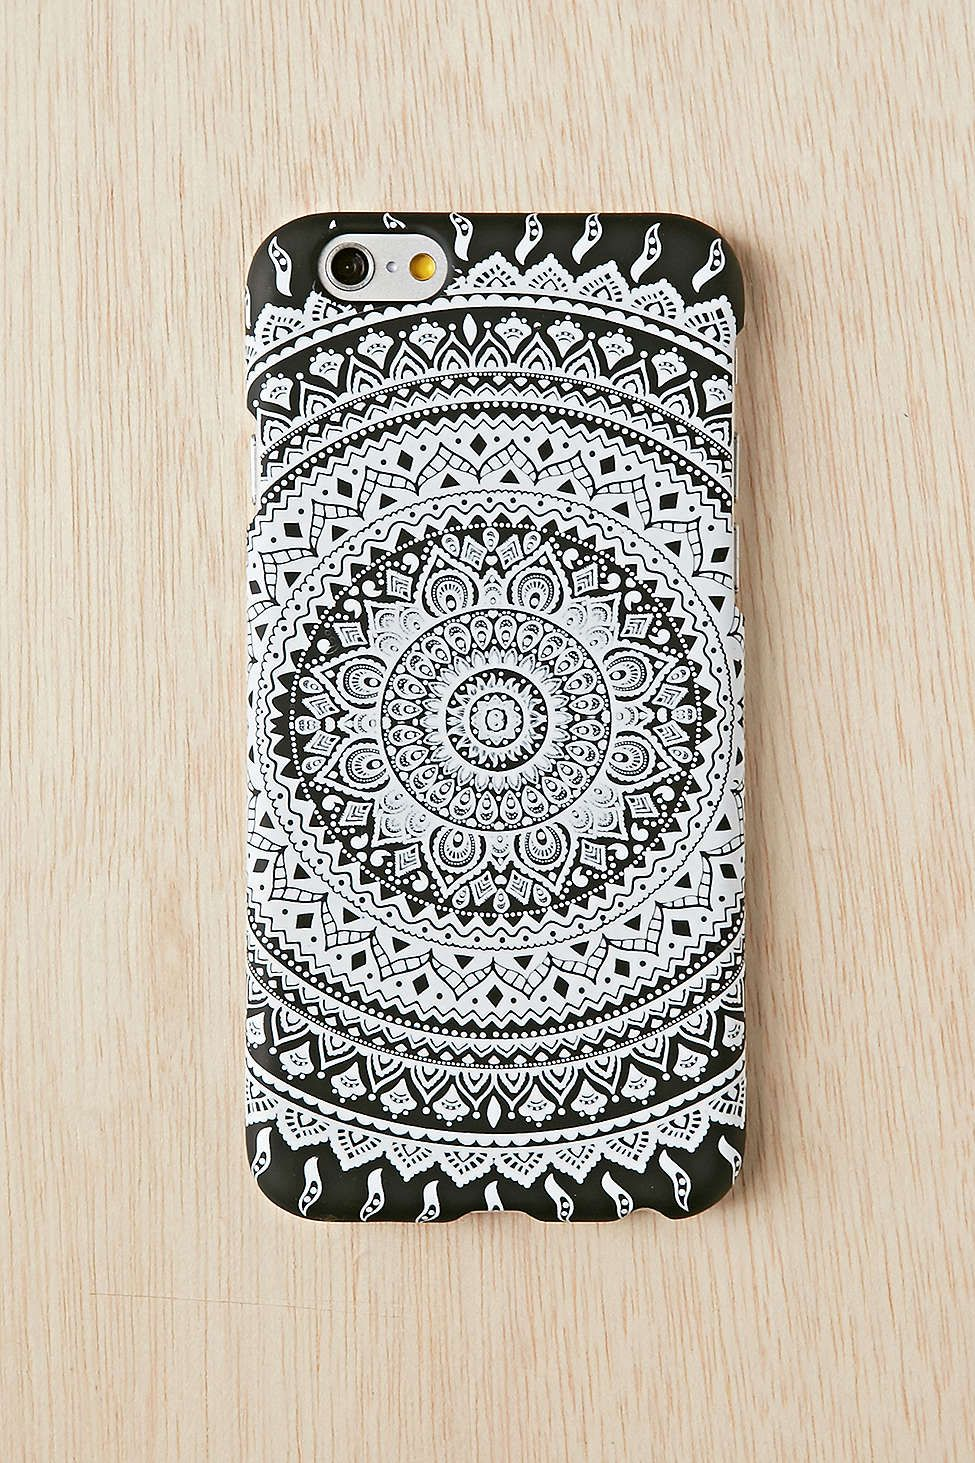 Genial Uo Custom Iphone Case Uo Custom Iphone Case Phone Custom Iphone 6 Case Maker Custom Iphone 6 Case Wholesale custom Custom Iphone 6 Case